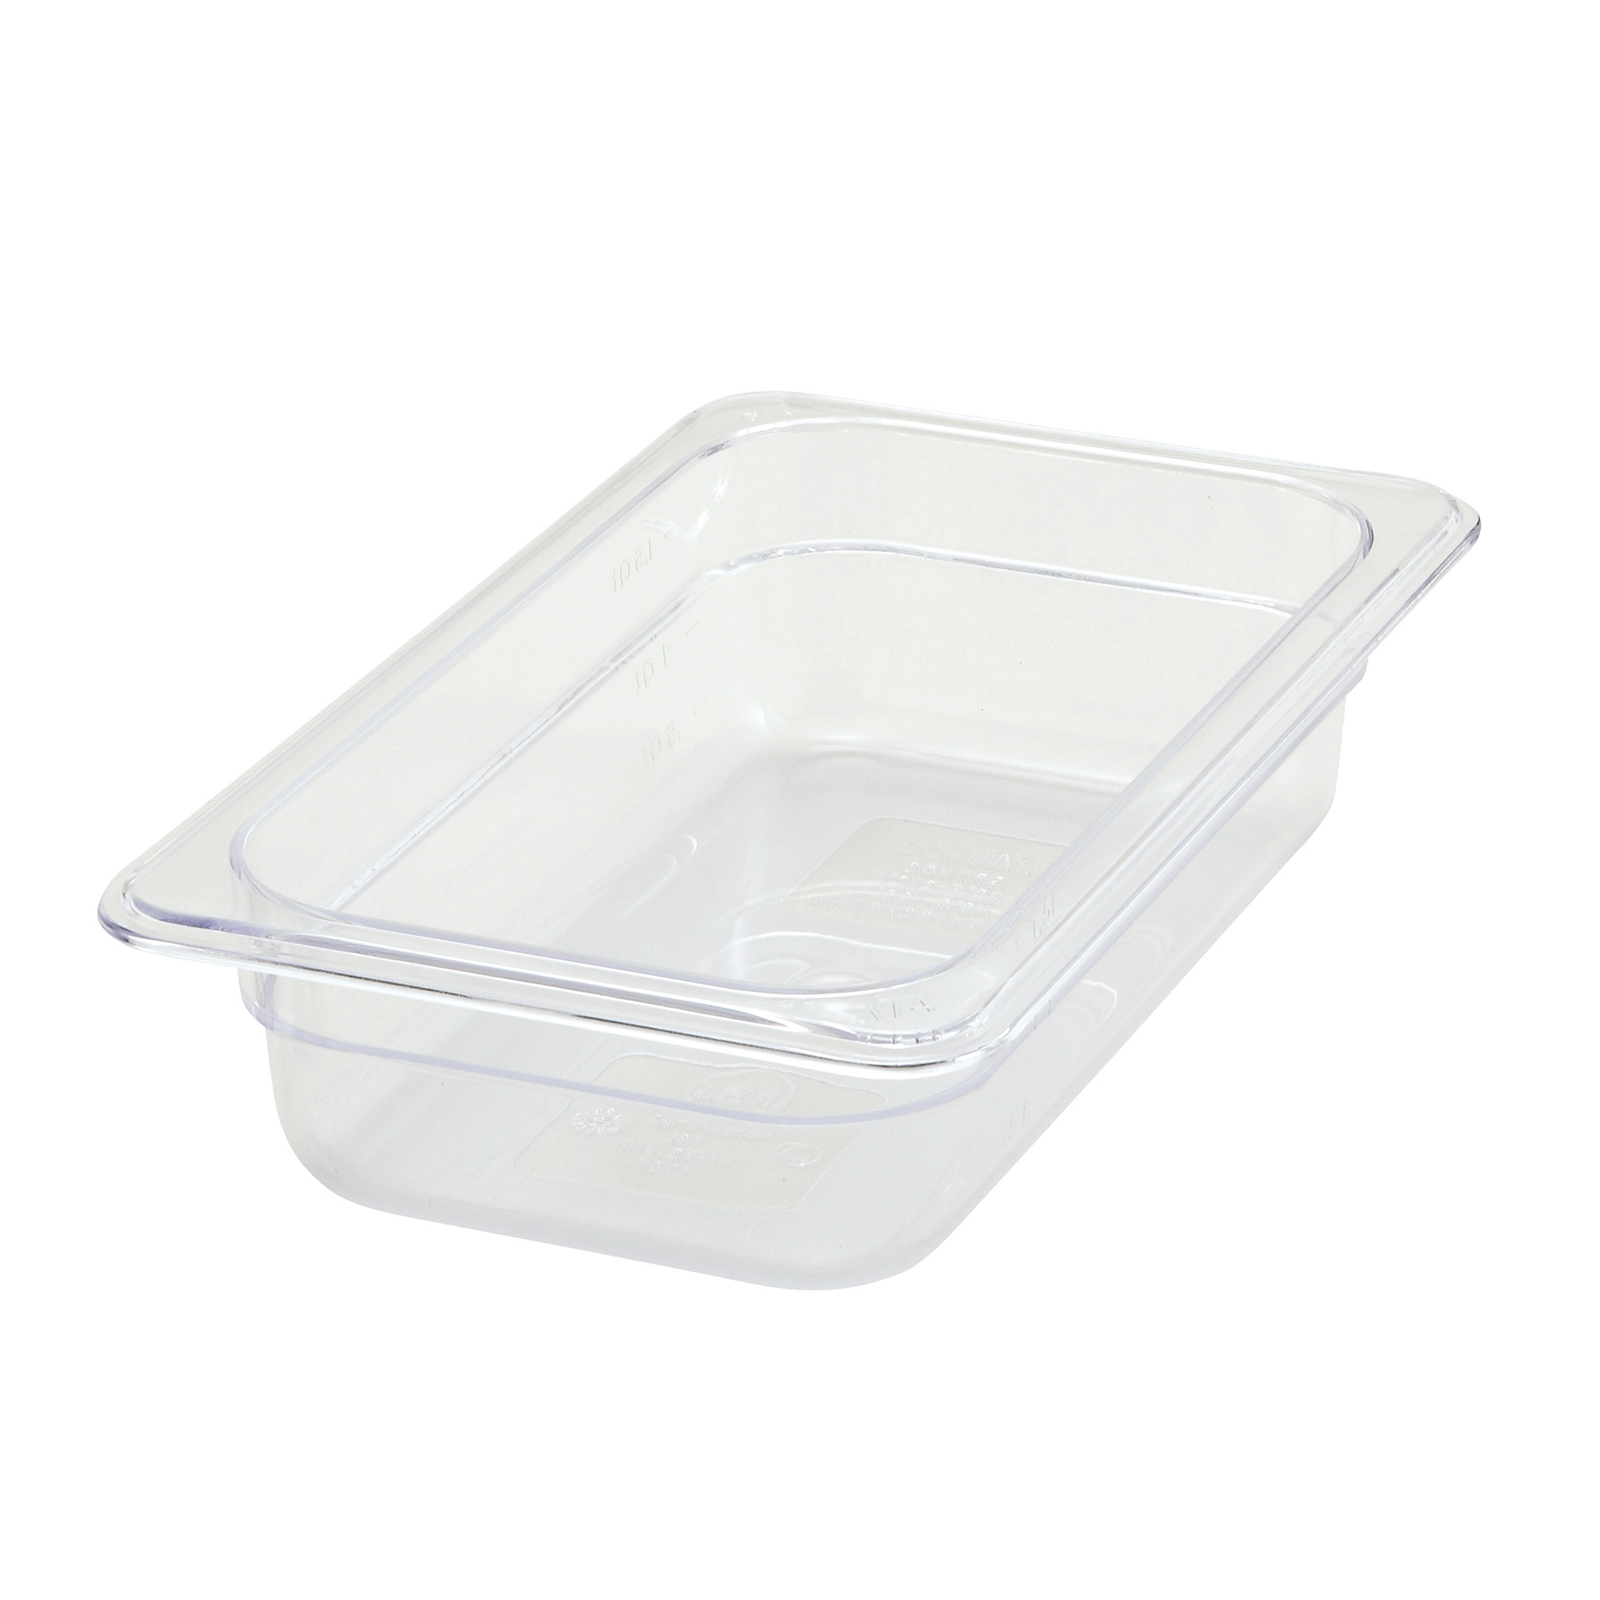 Winco SP7402 food pan, plastic